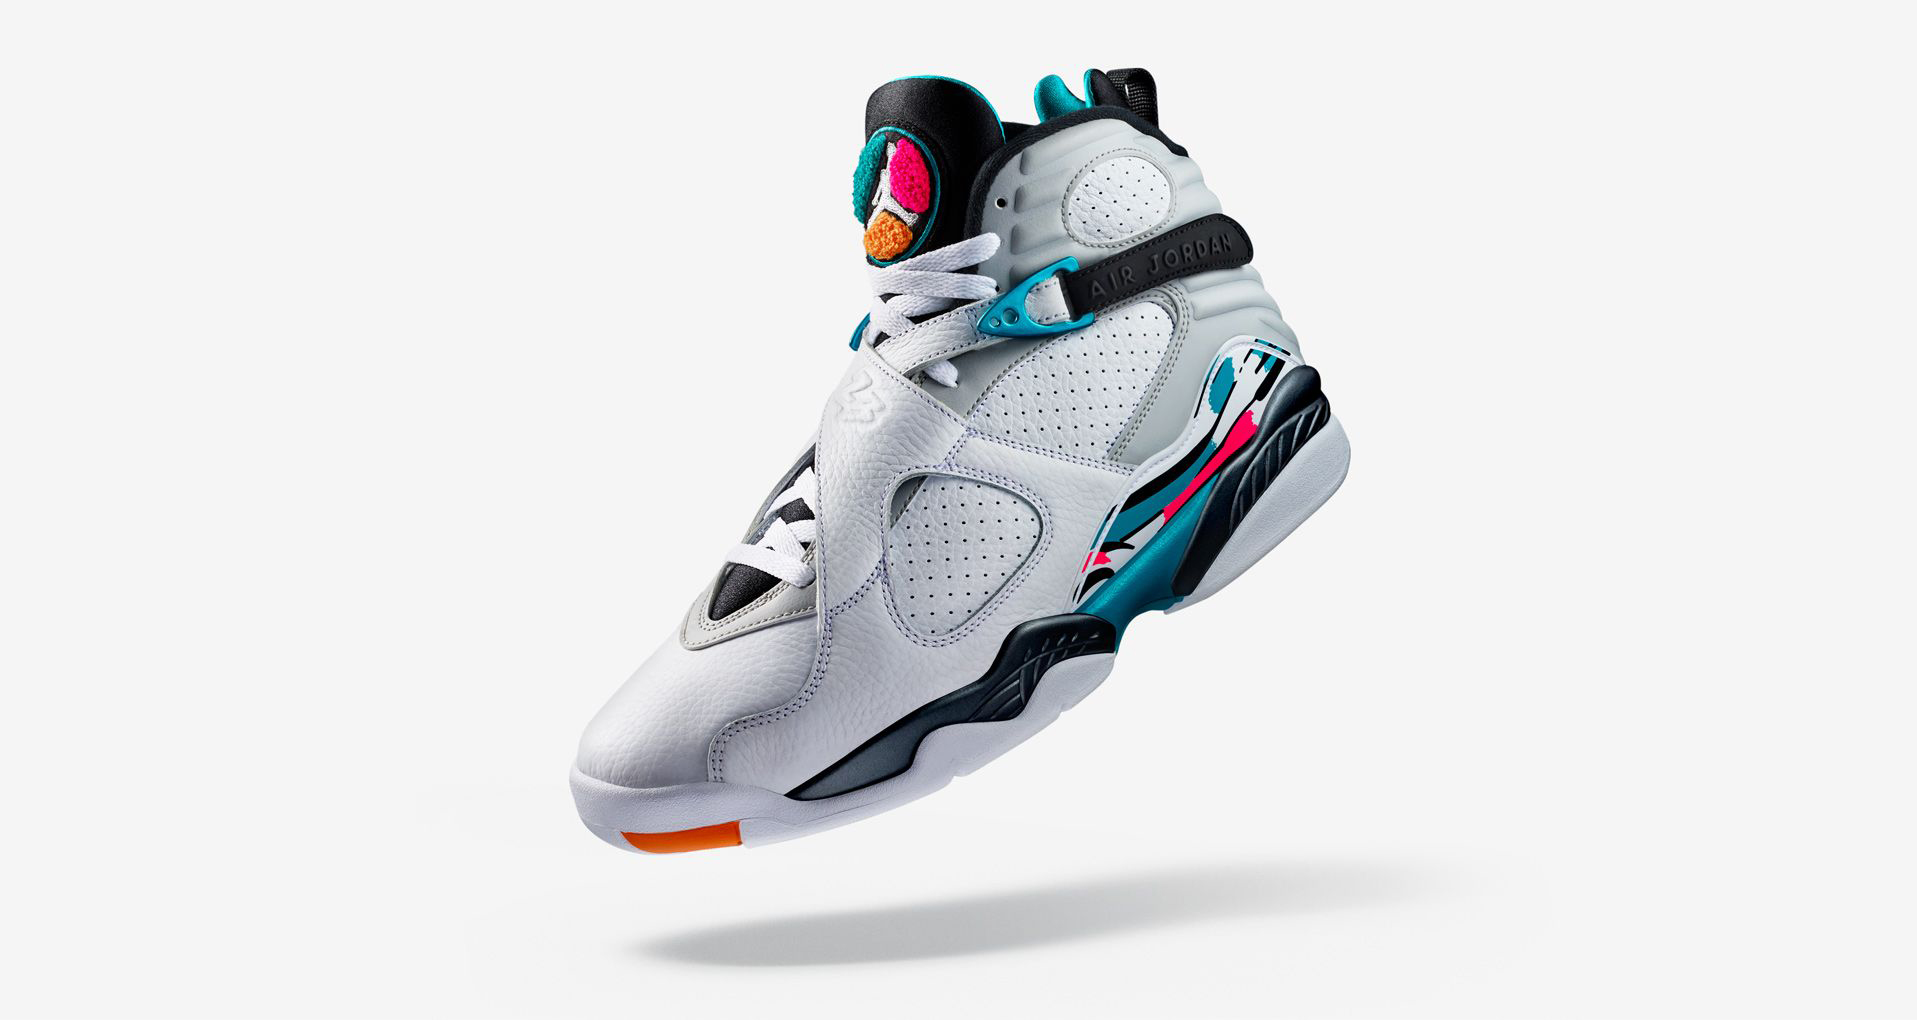 92c7d824648eb Air Jordan 8 South Beach Release Date Info | SneakerFits.com